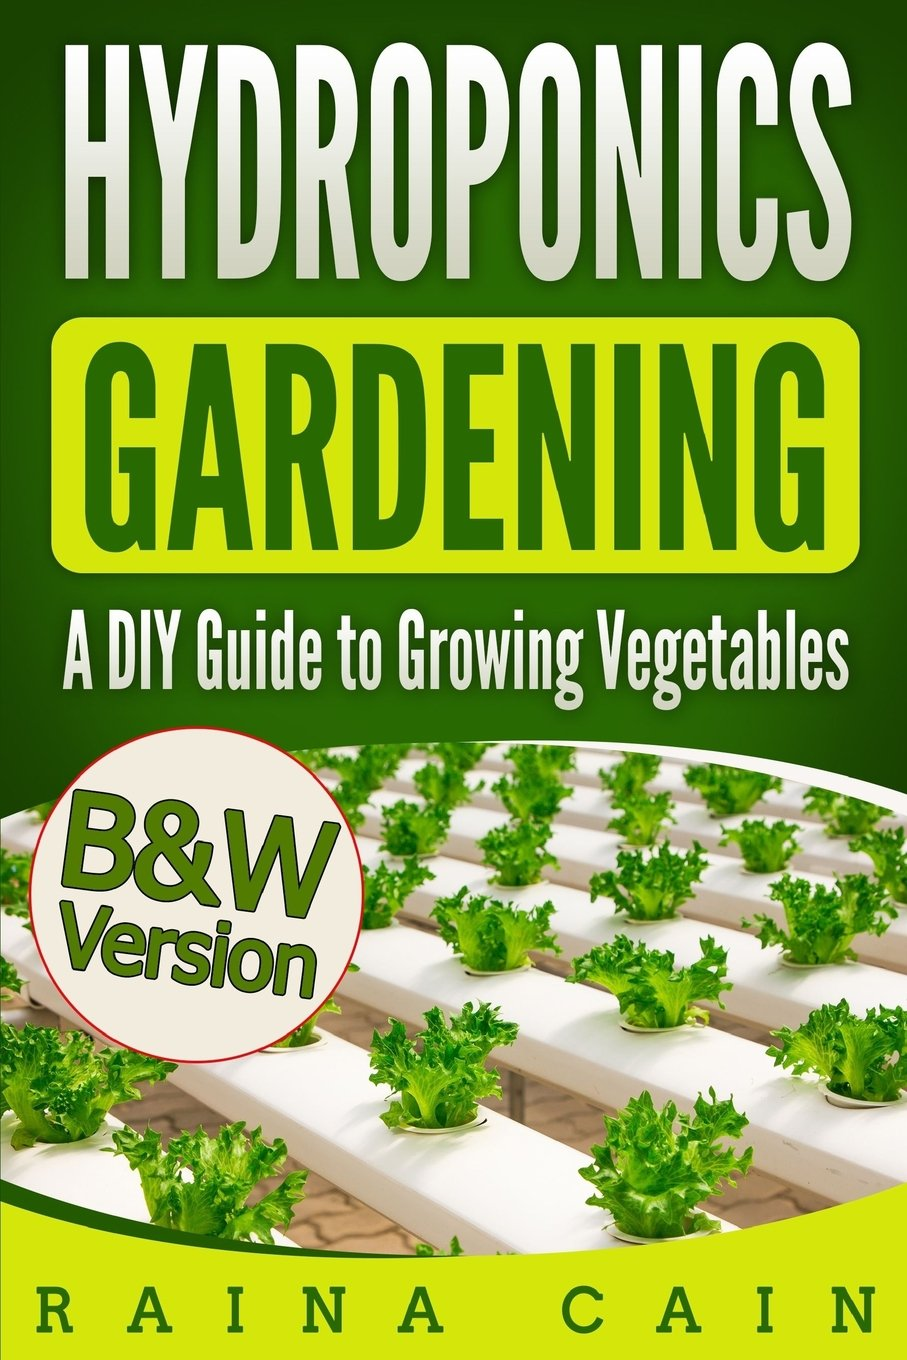 Hydroponics Gardening: A DIY Guide to Growing Vegetables (B&W Version)